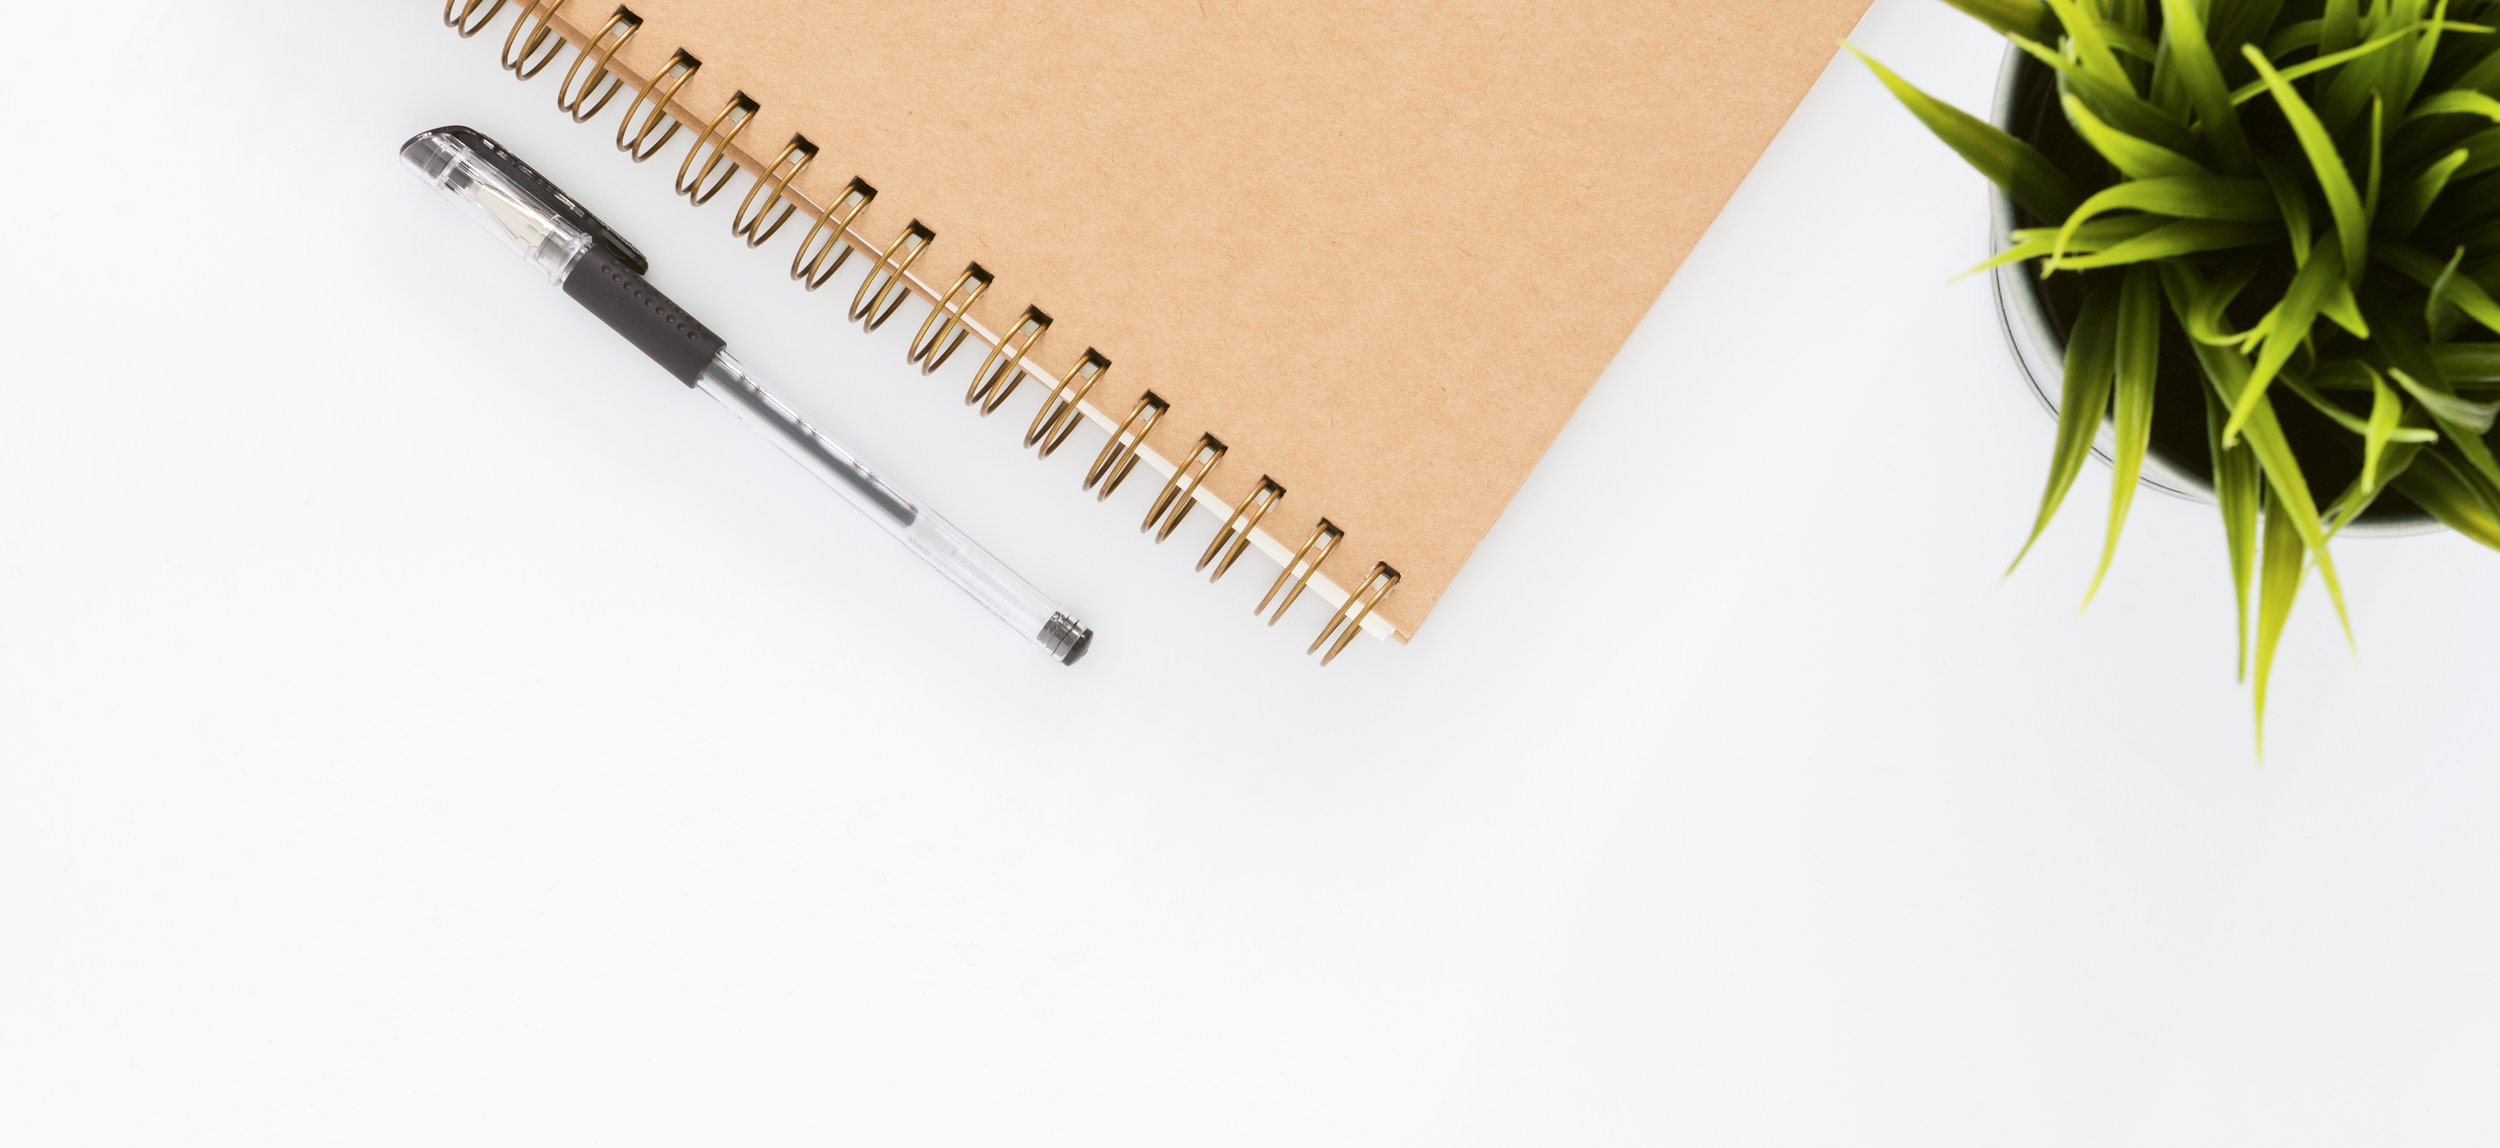 Think your business doesn't need a blog? - Think again.